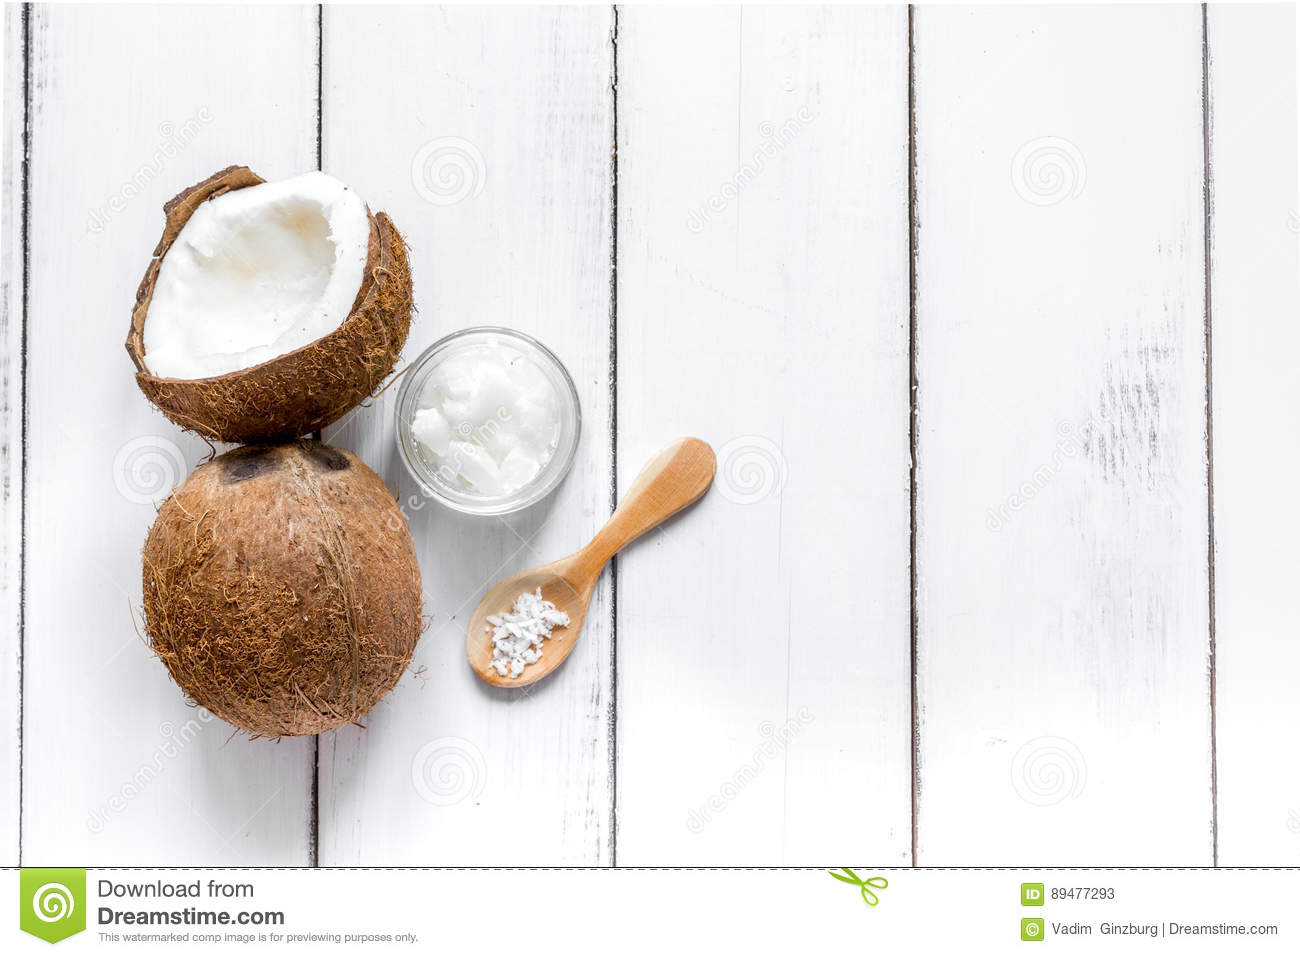 how to make coconut oil from fresh coconut